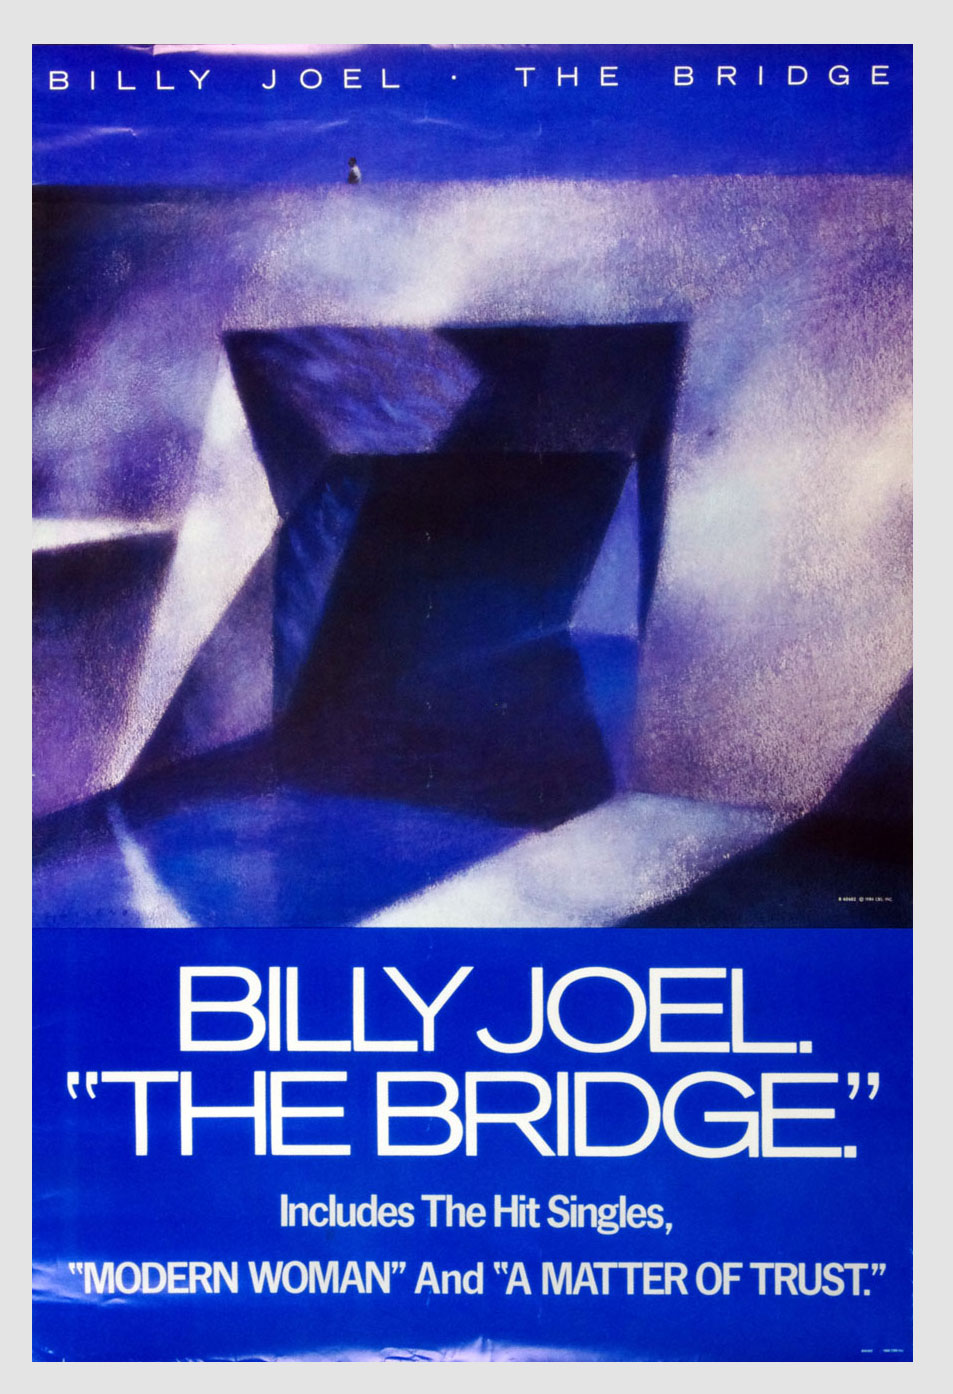 Billy Joel Poster The Bridge 1986 New Album Promotion 24 x 36